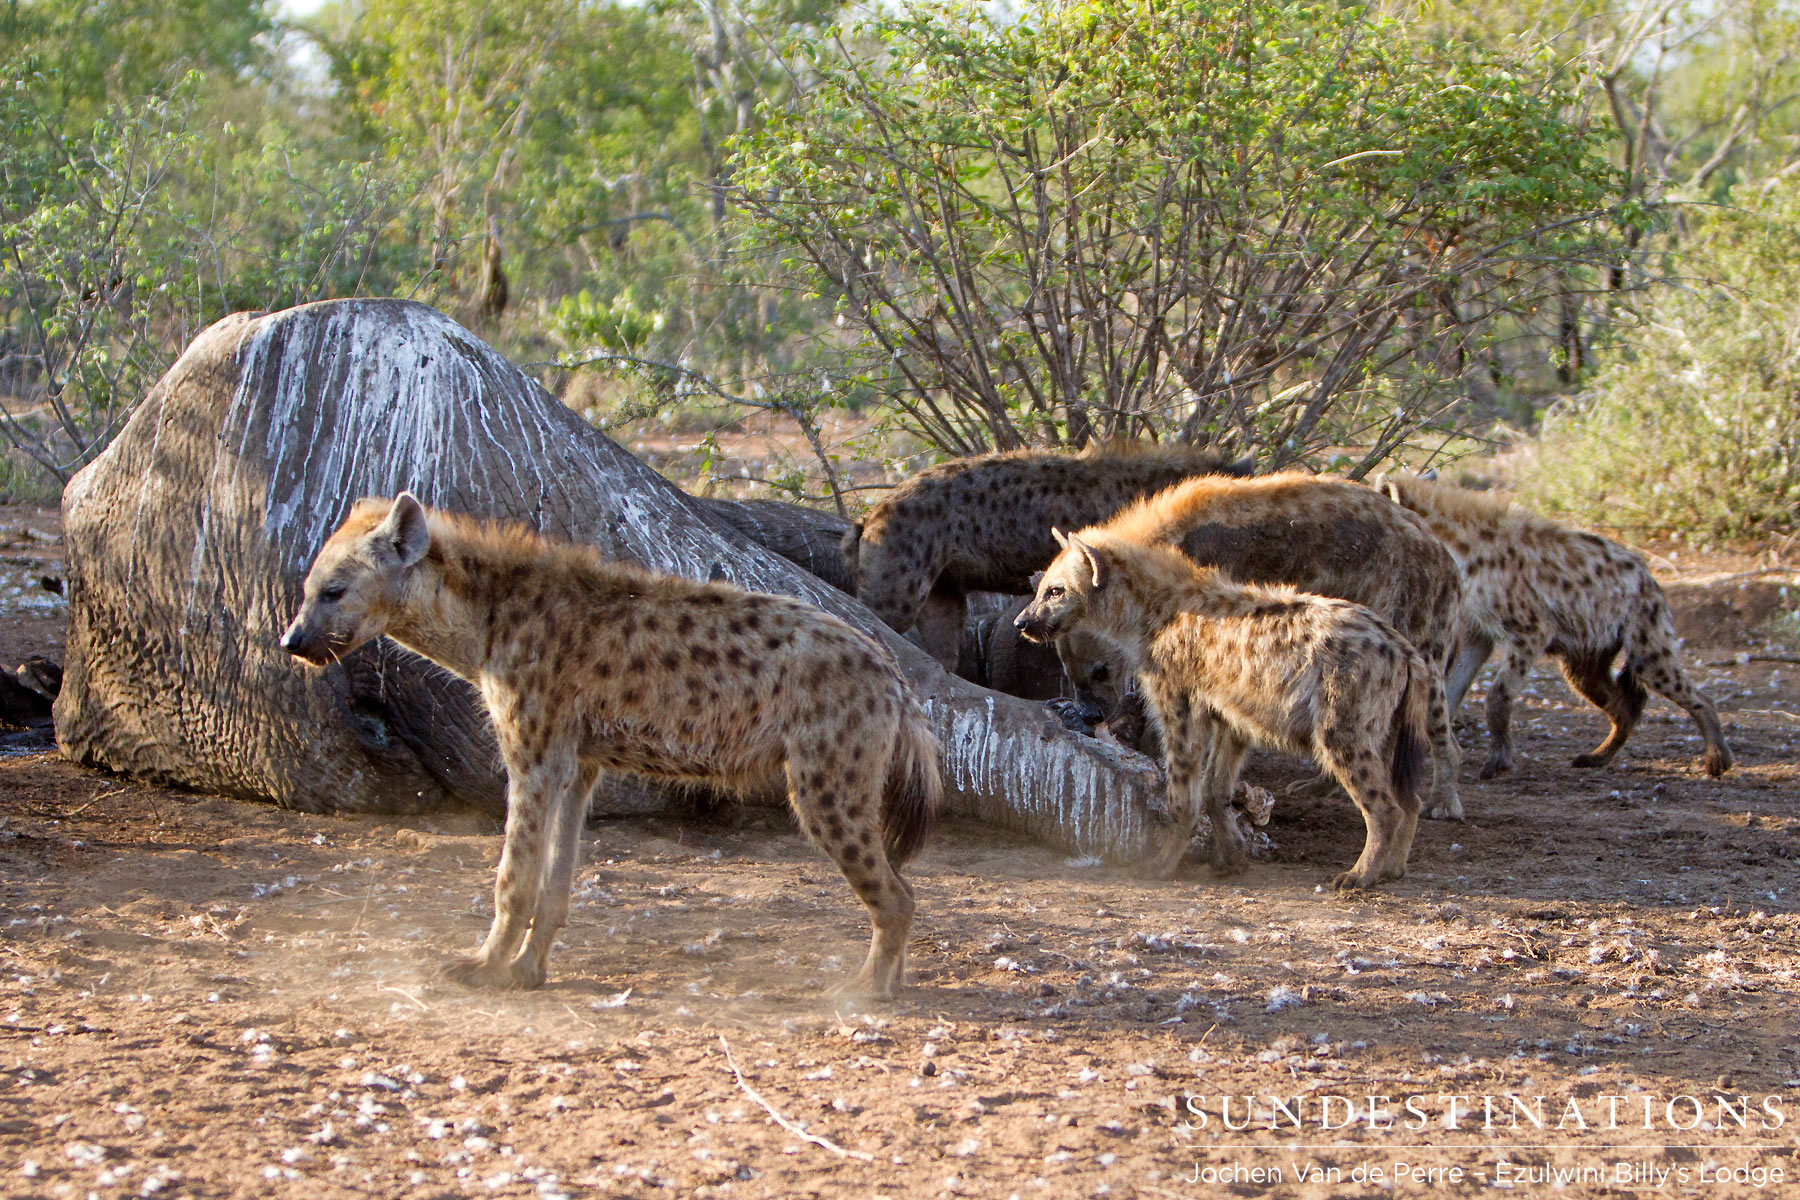 Hyenas feed on fallen giant, Shoshangane